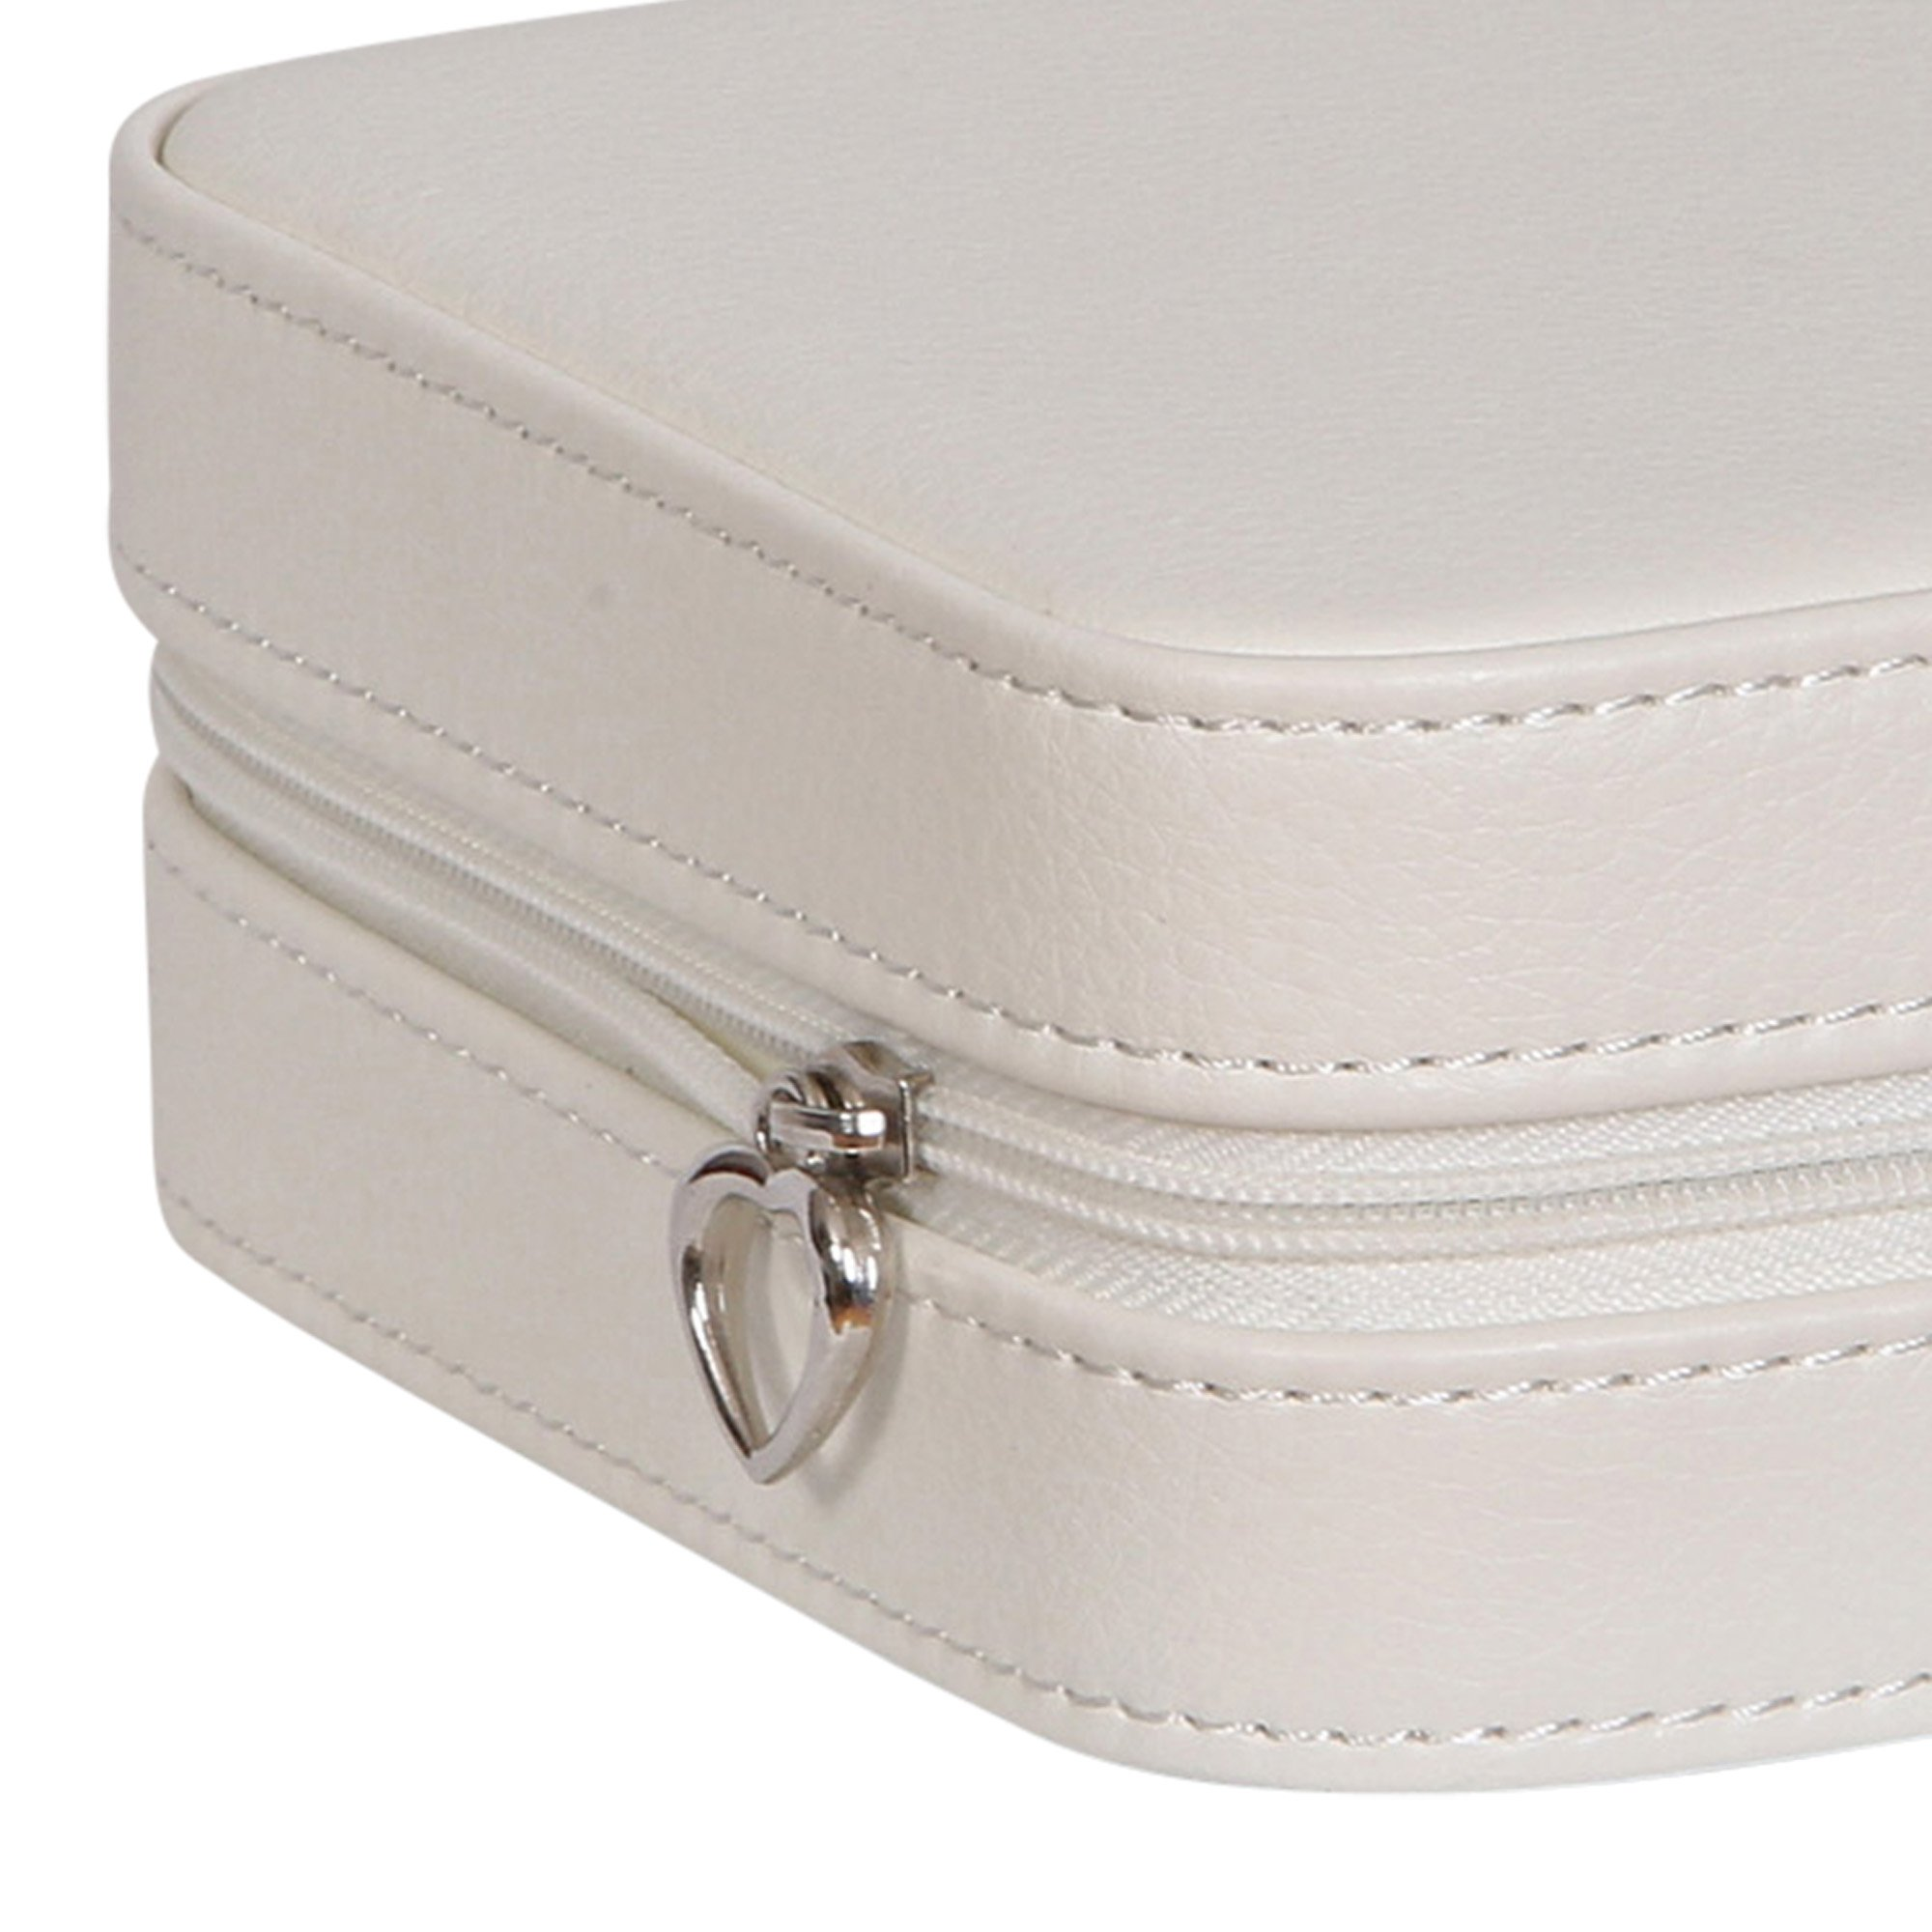 Mele & Co. Dana Travel Jewelry Case in Faux Leather (Ivory) by Mele & Co. (Image #4)